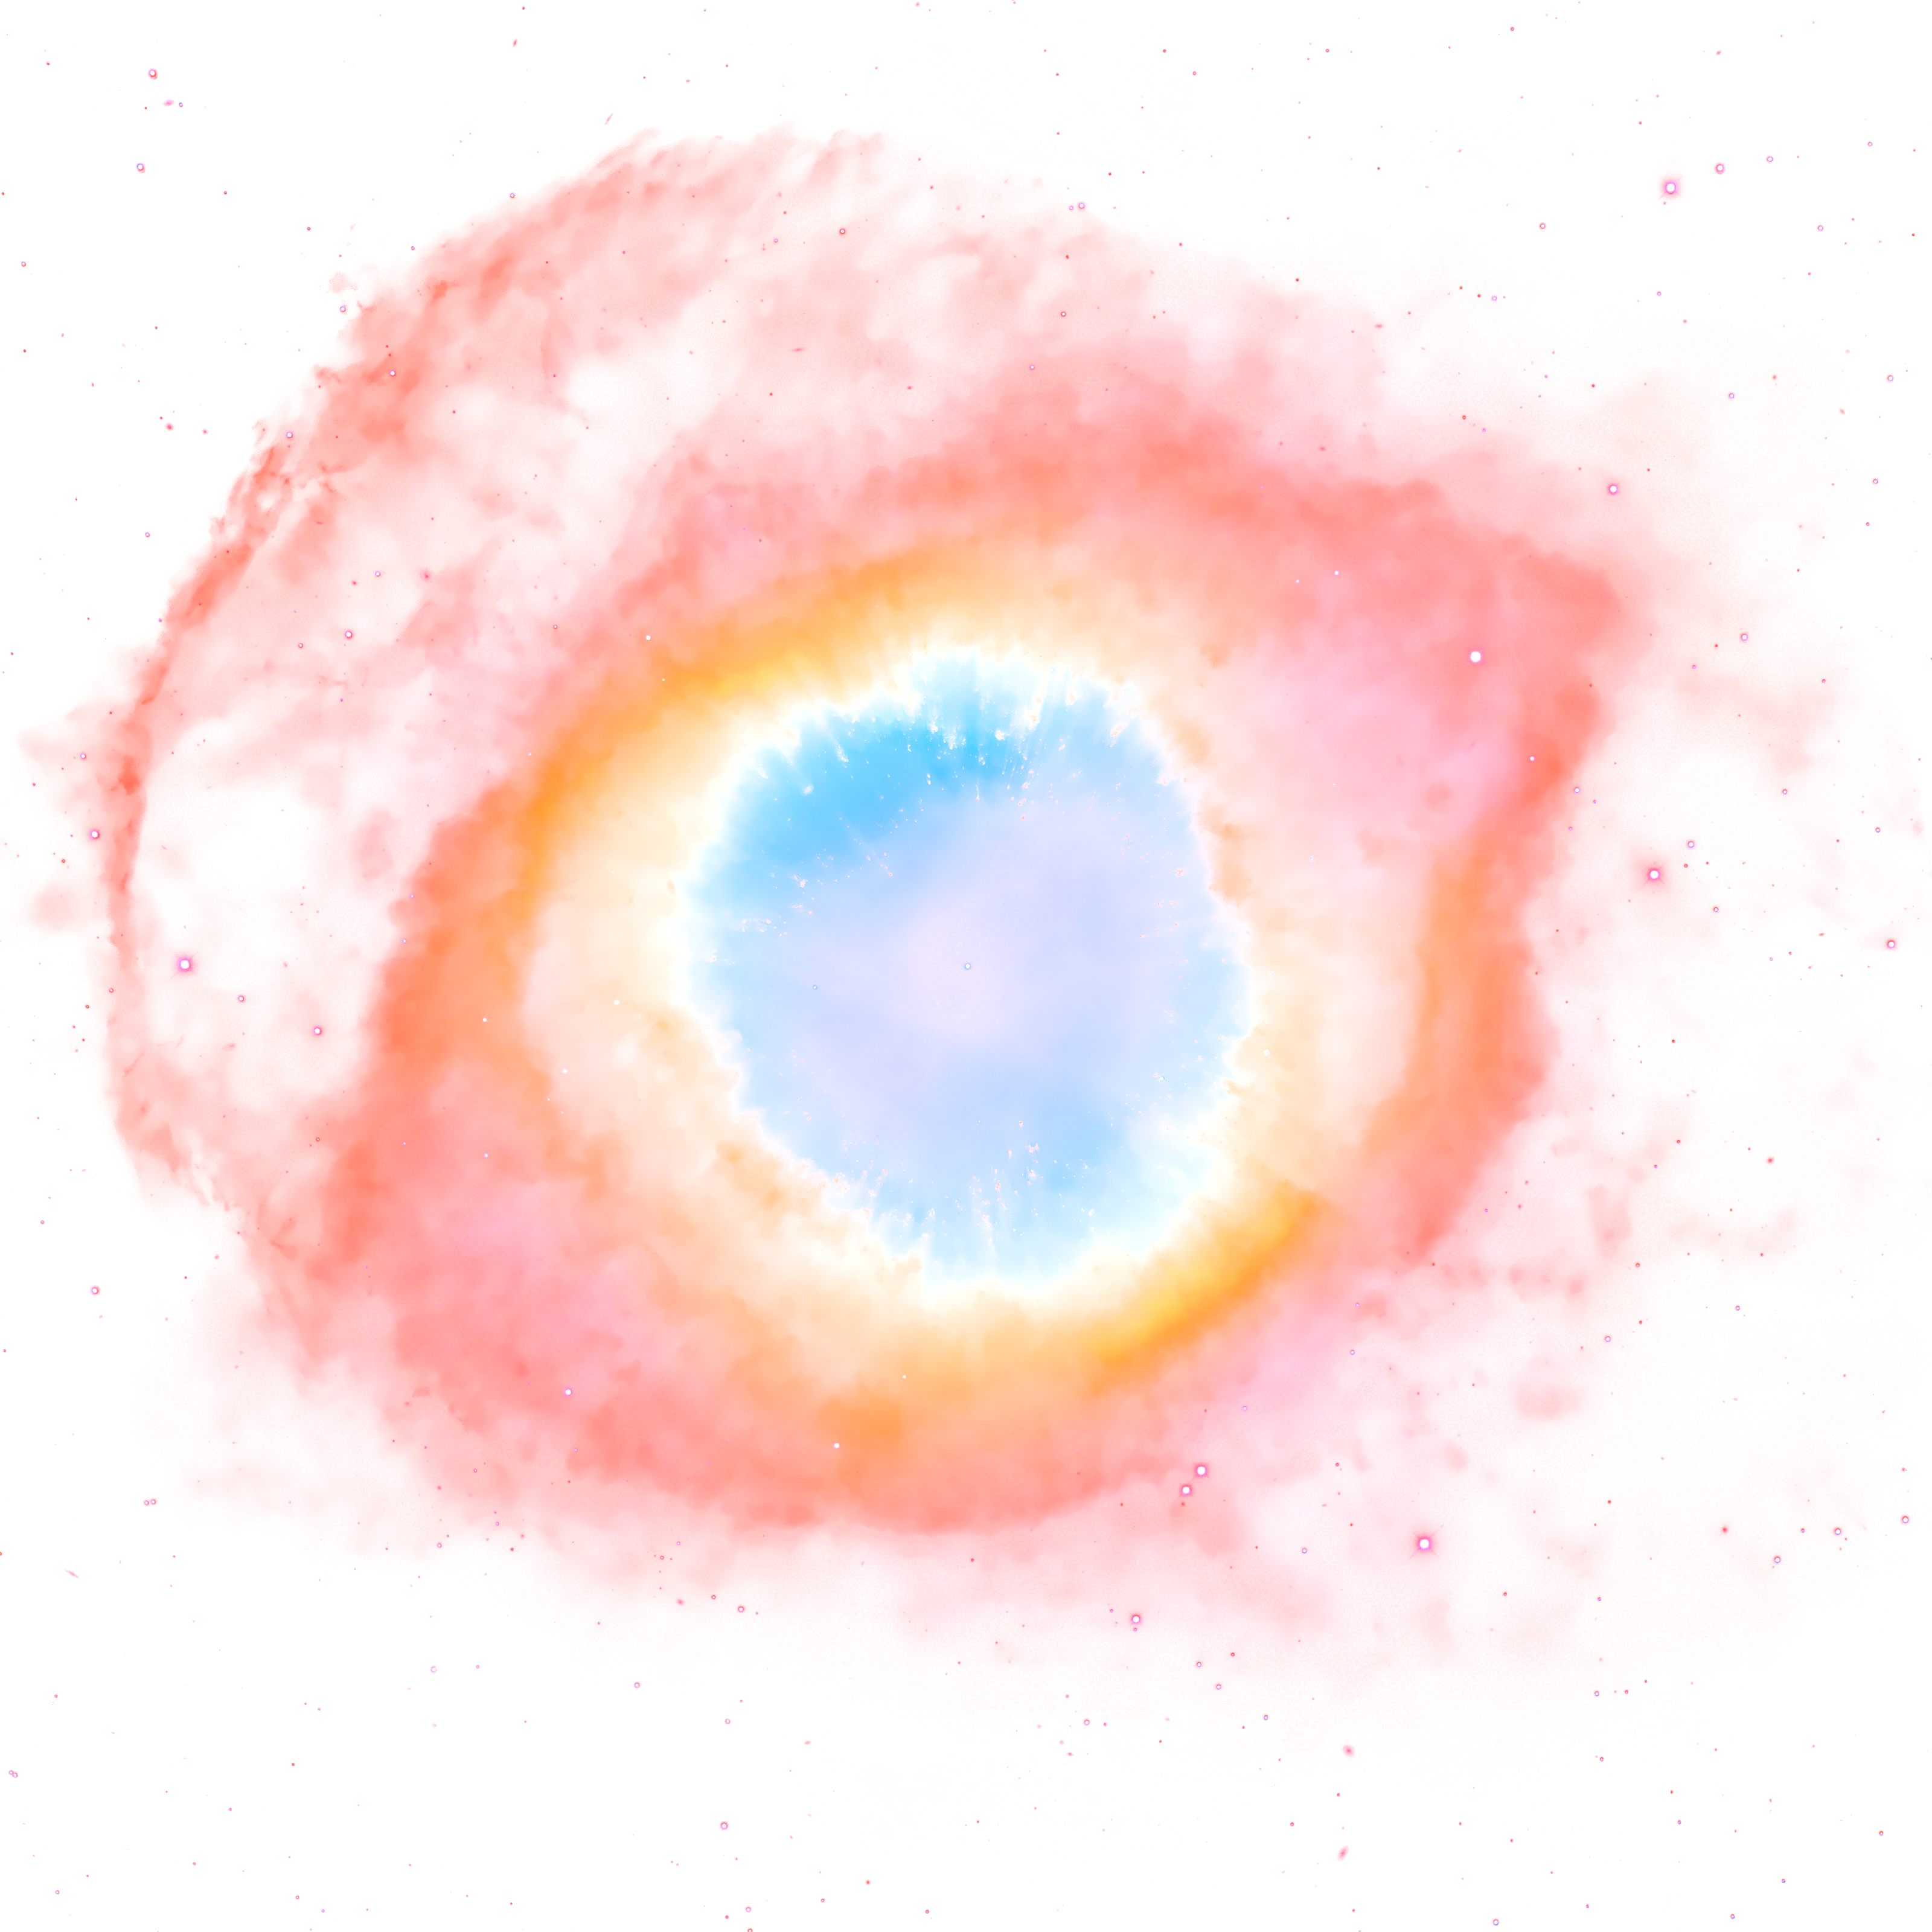 Space png transparent. File translucent helix nebula